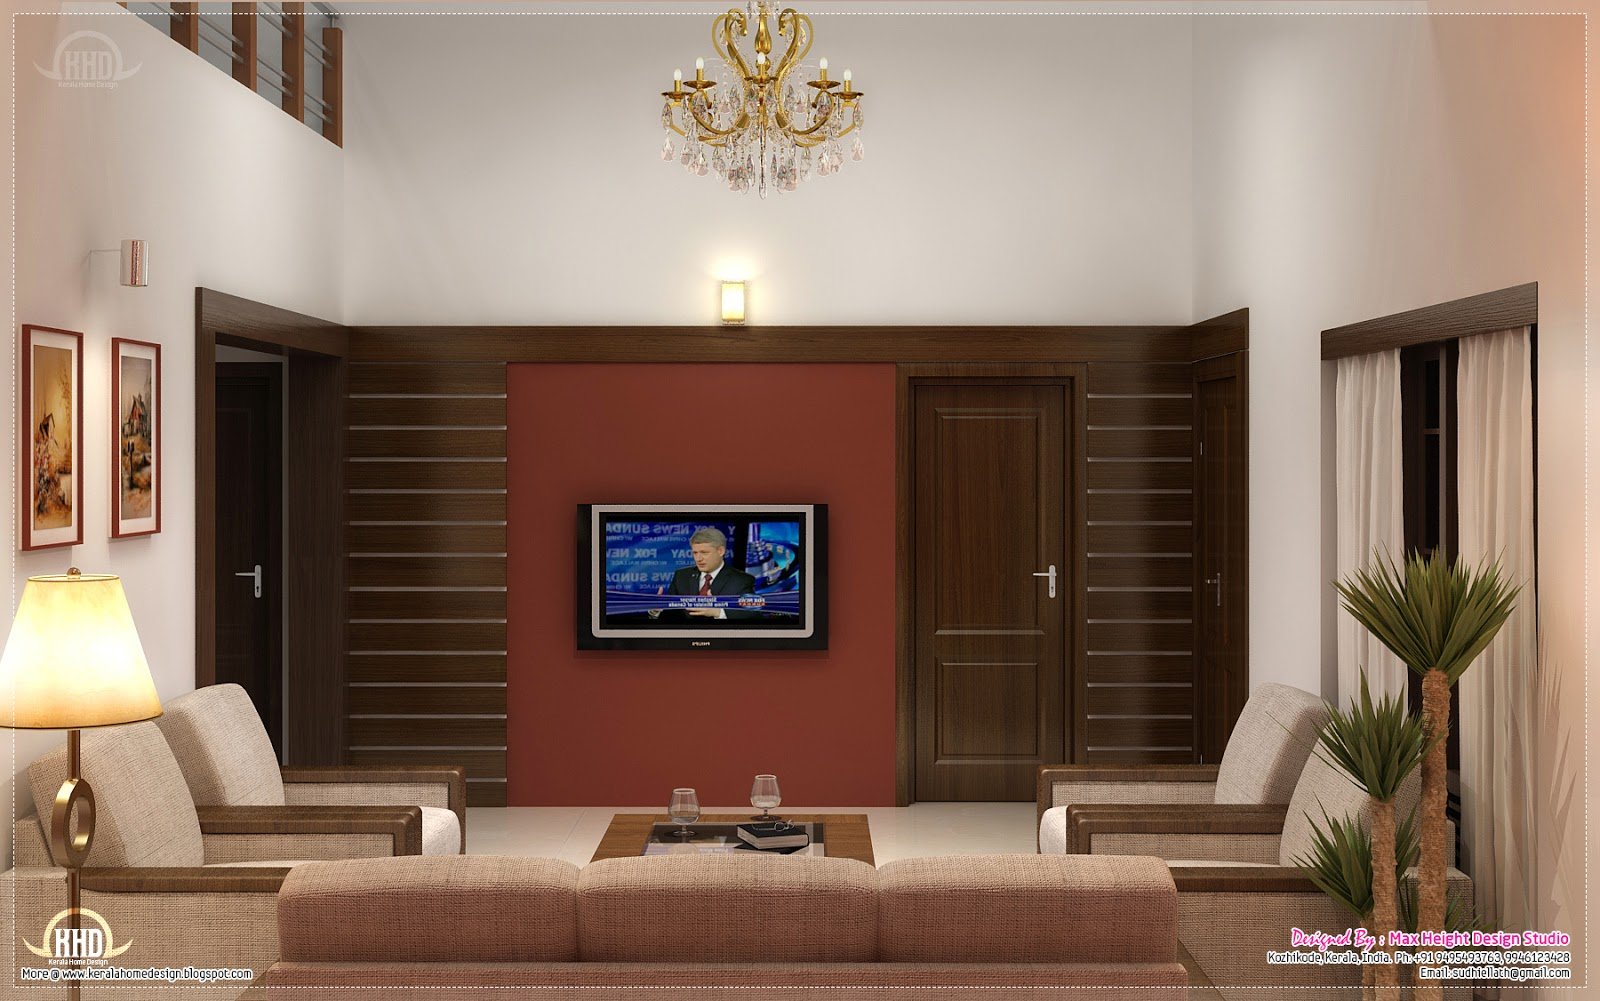 Home interior design ideas kerala home design and floor for House living room design